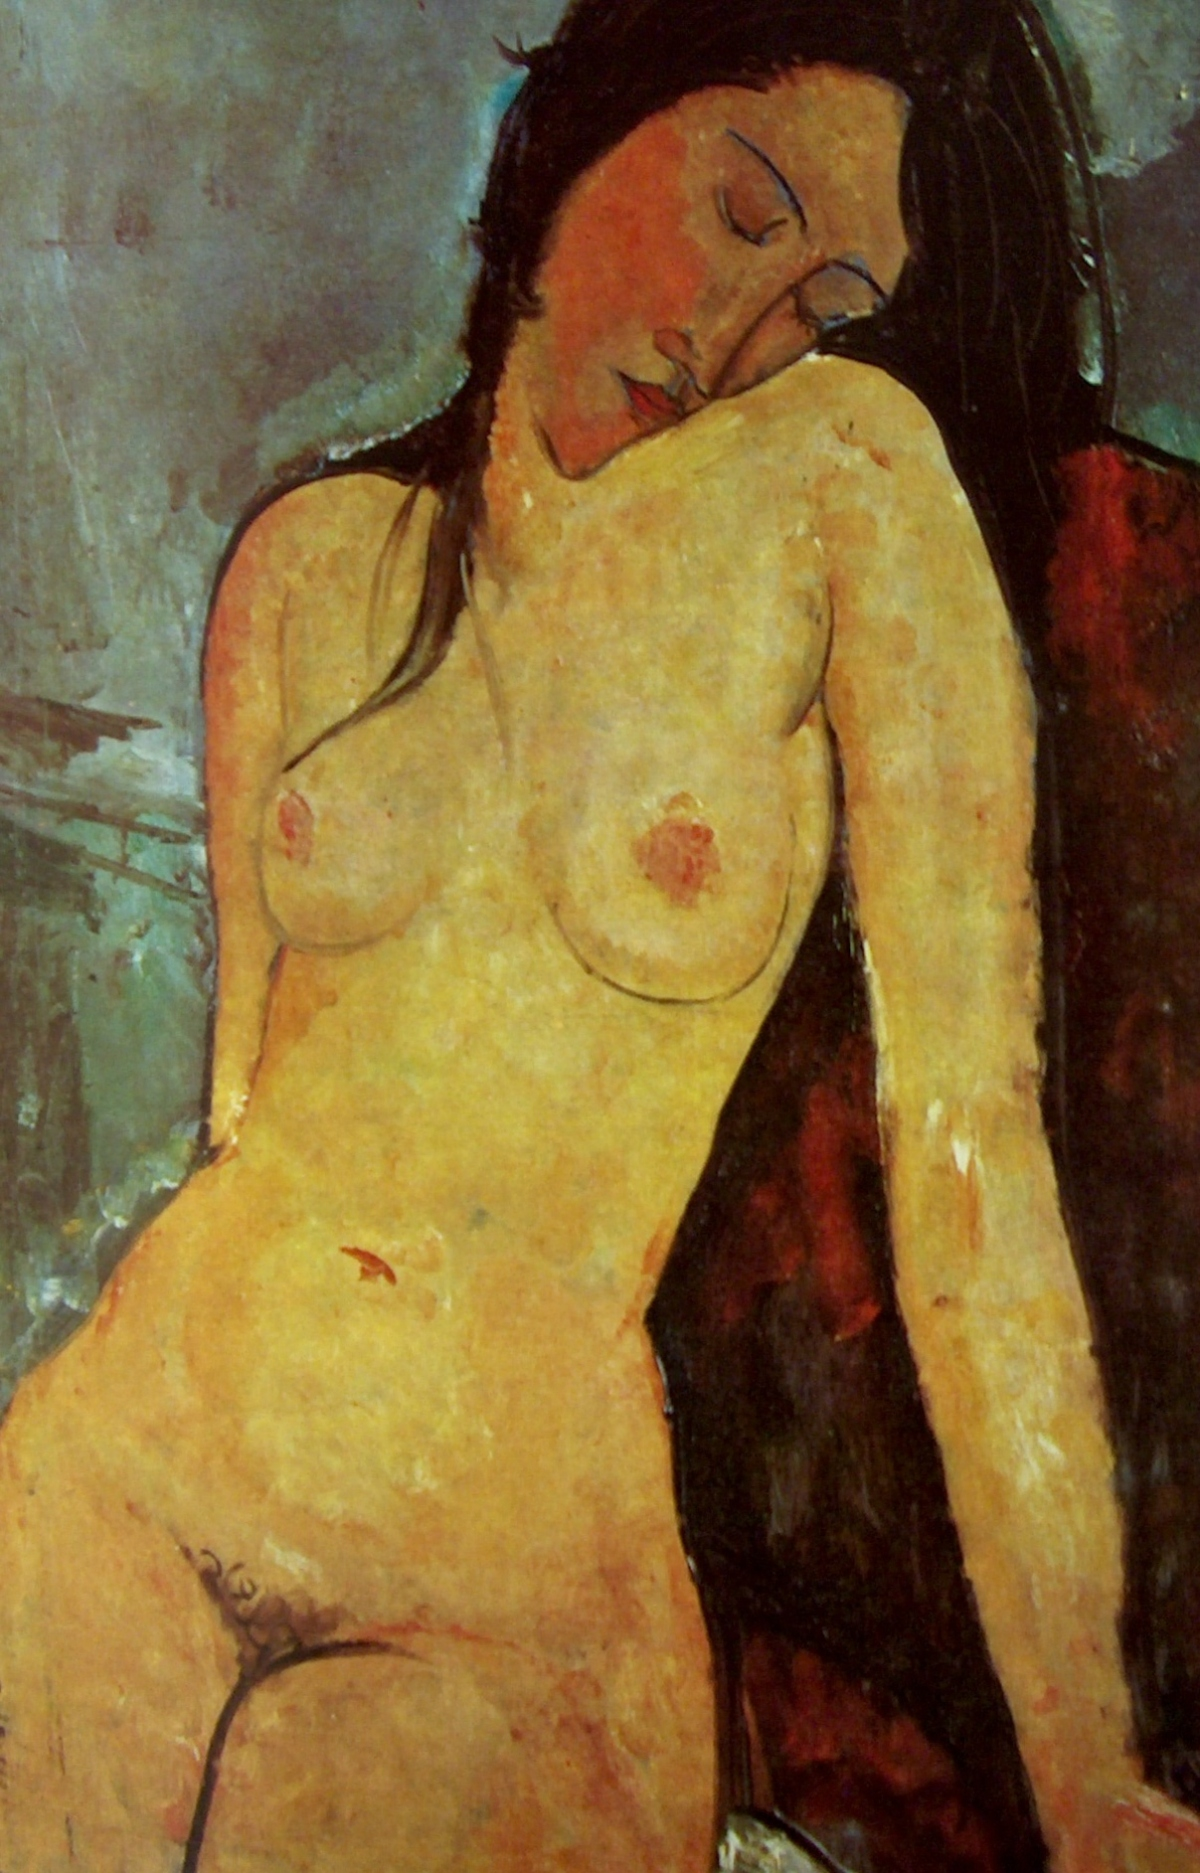 http://santitafarella.files.wordpress.com/2008/07/nude-with-pubes-modigliani.jpg?w=1200